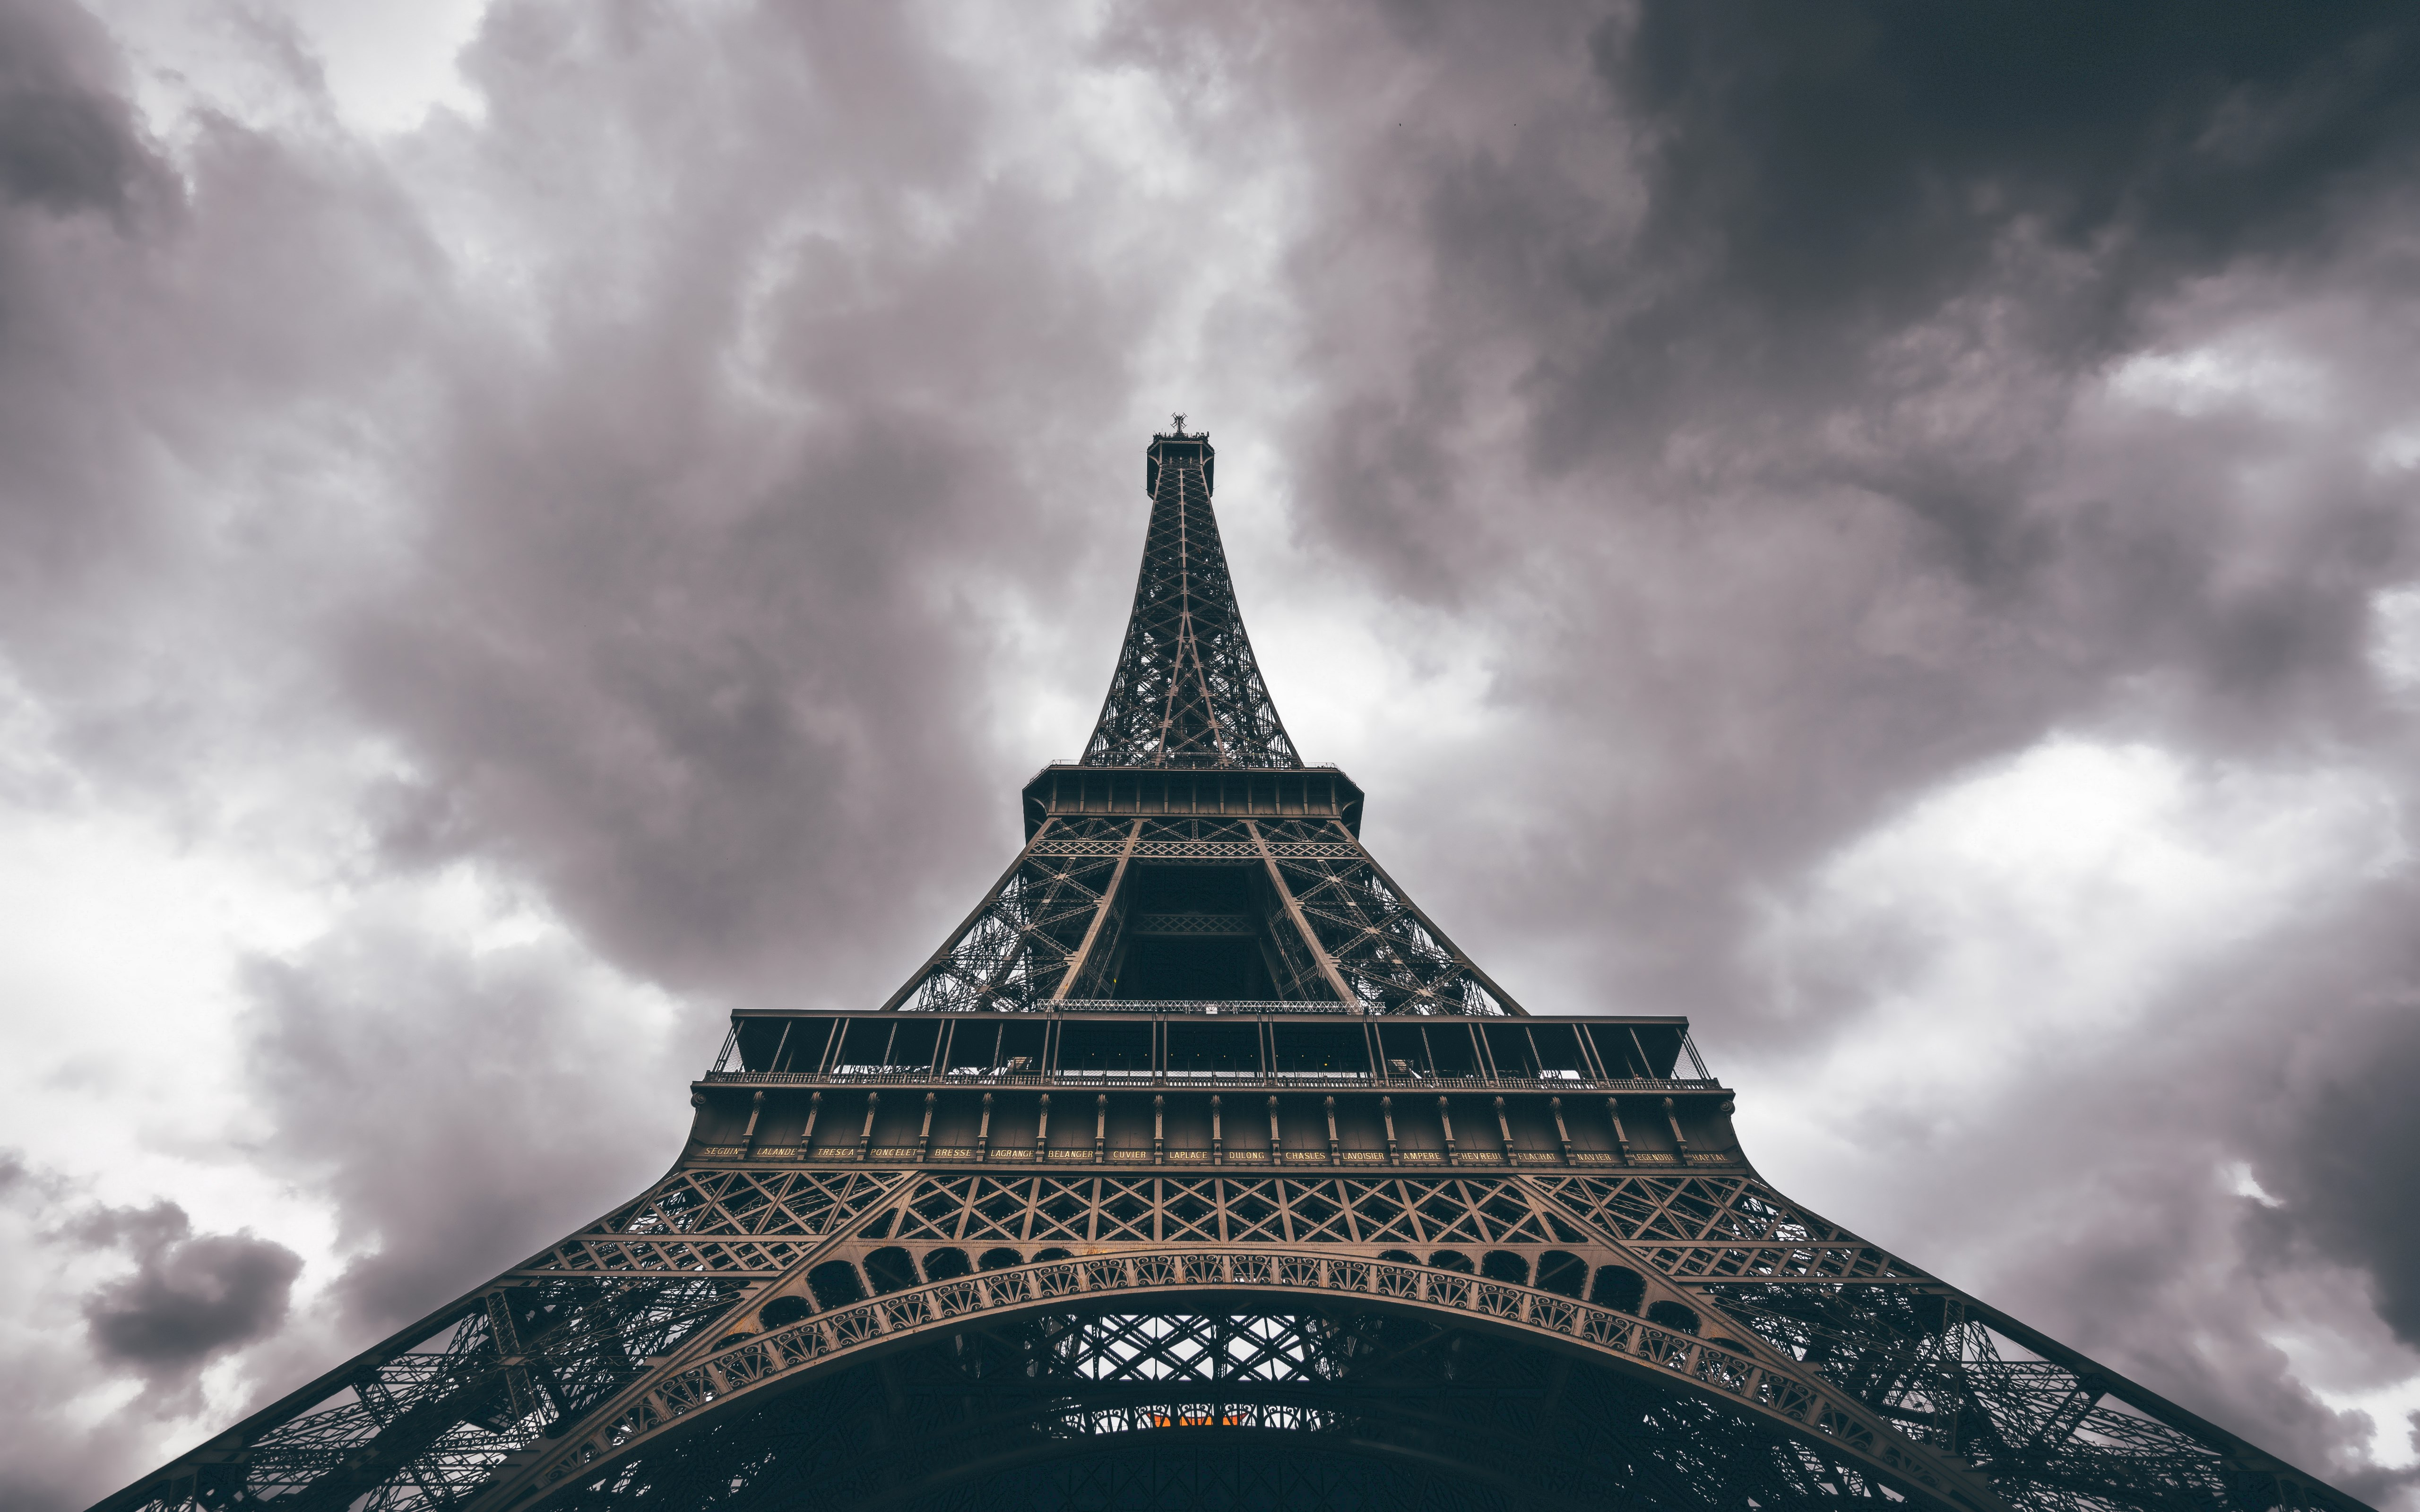 Eiffel Tower in a cloudy day wallpaper 5120x3200